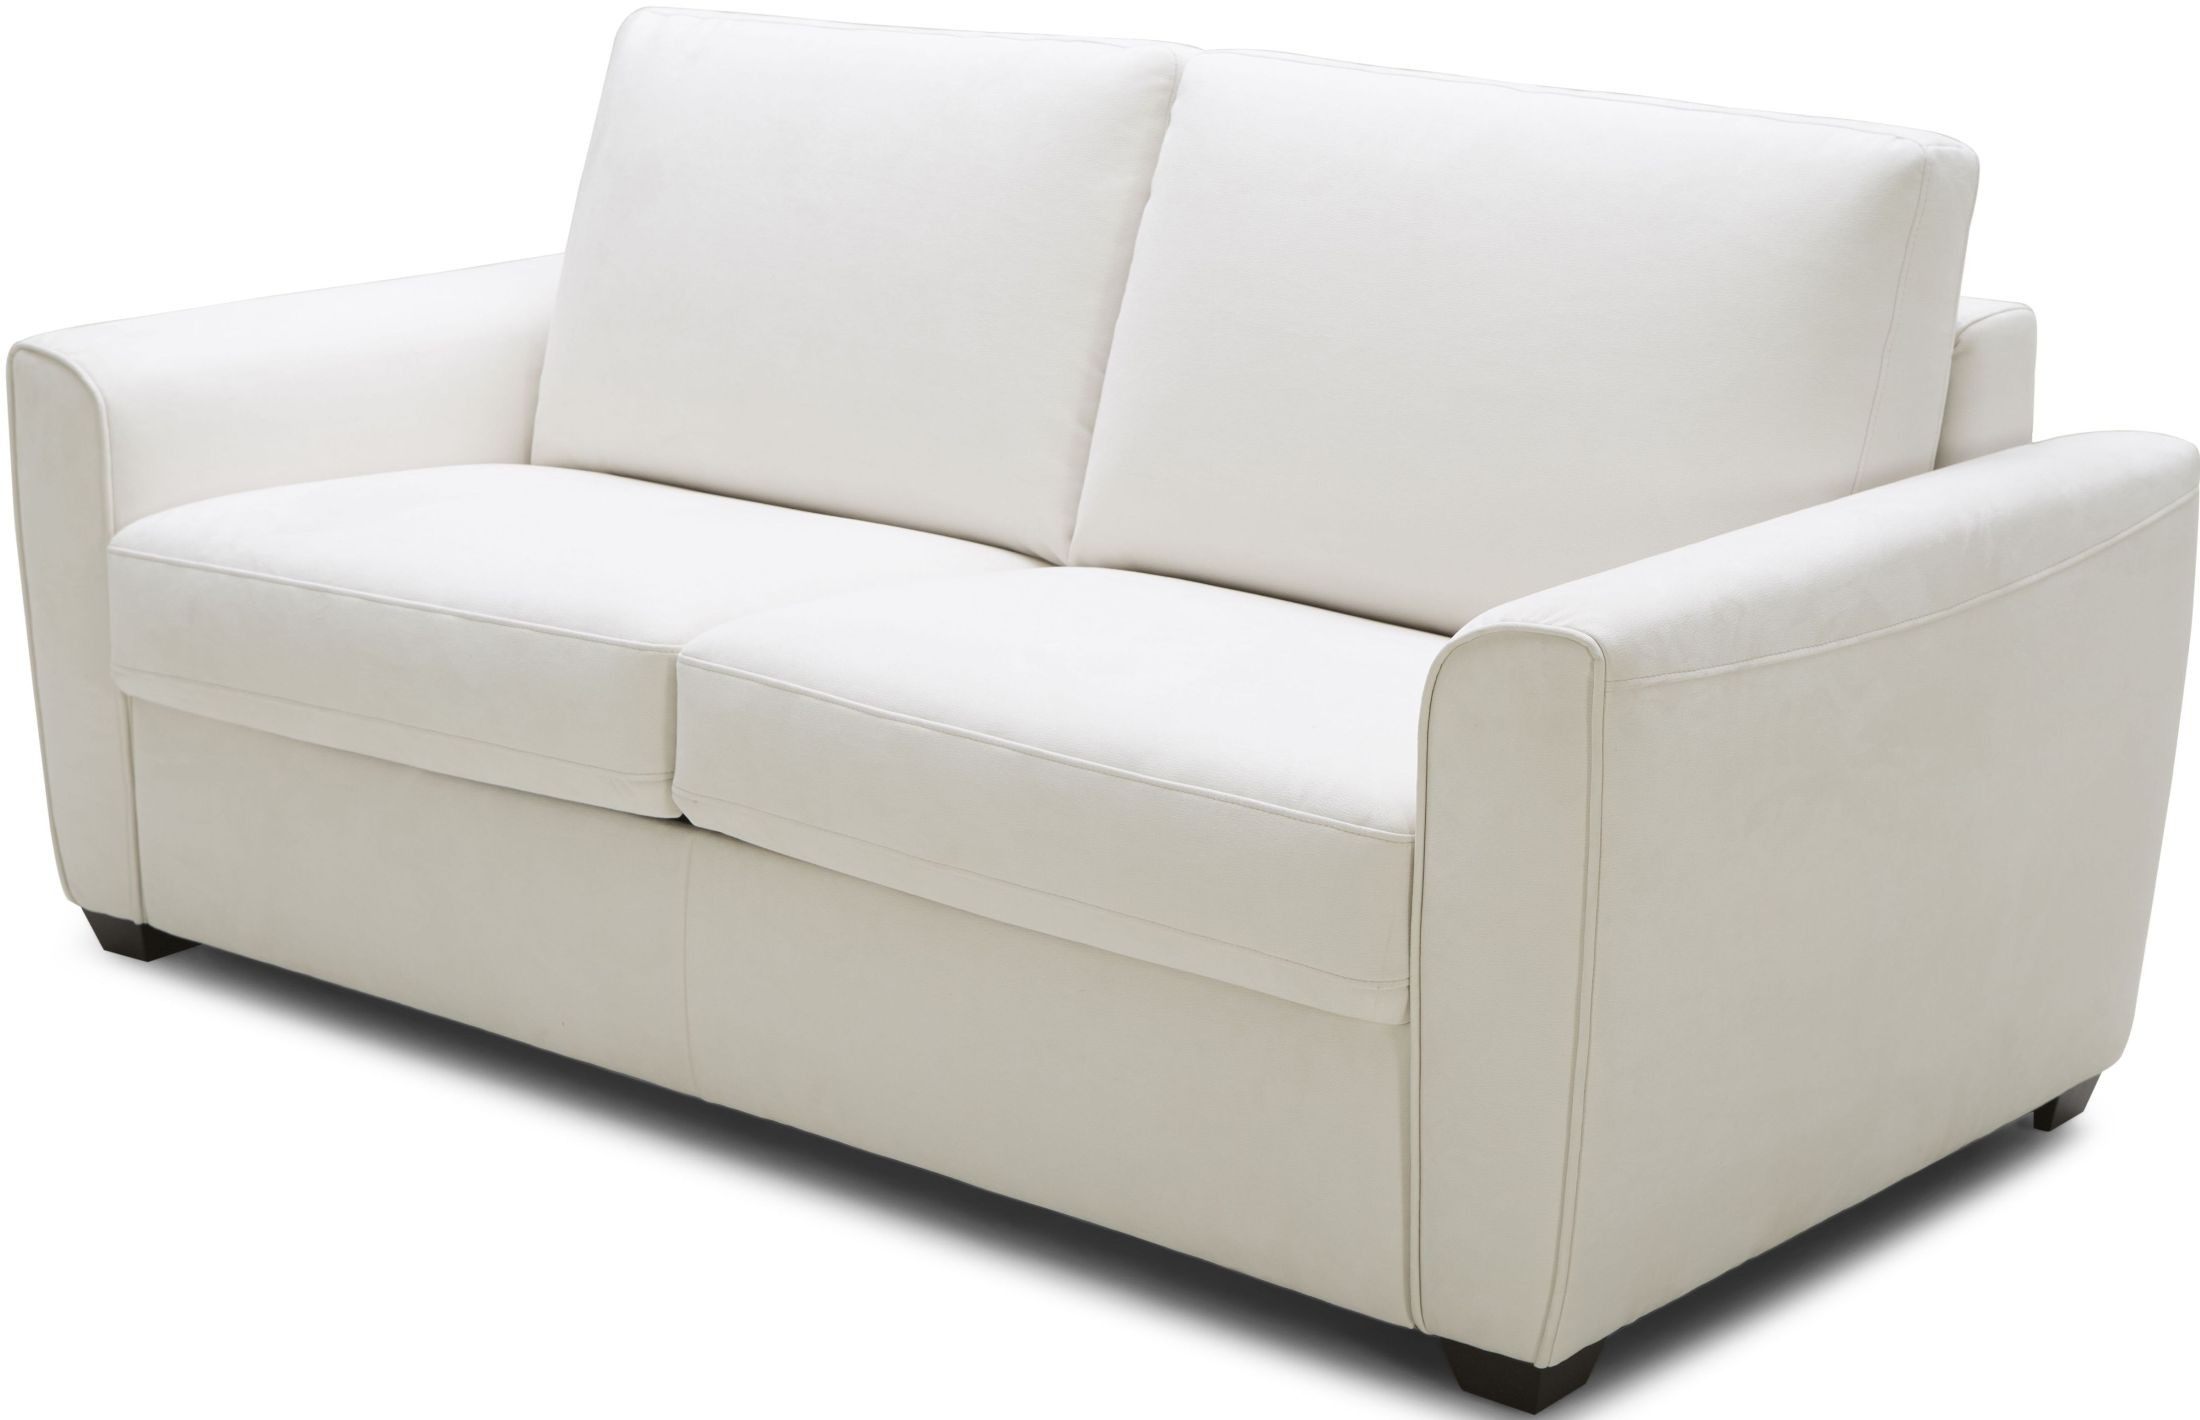 Alpine white sofa bed from jnm coleman furniture for White divan bed